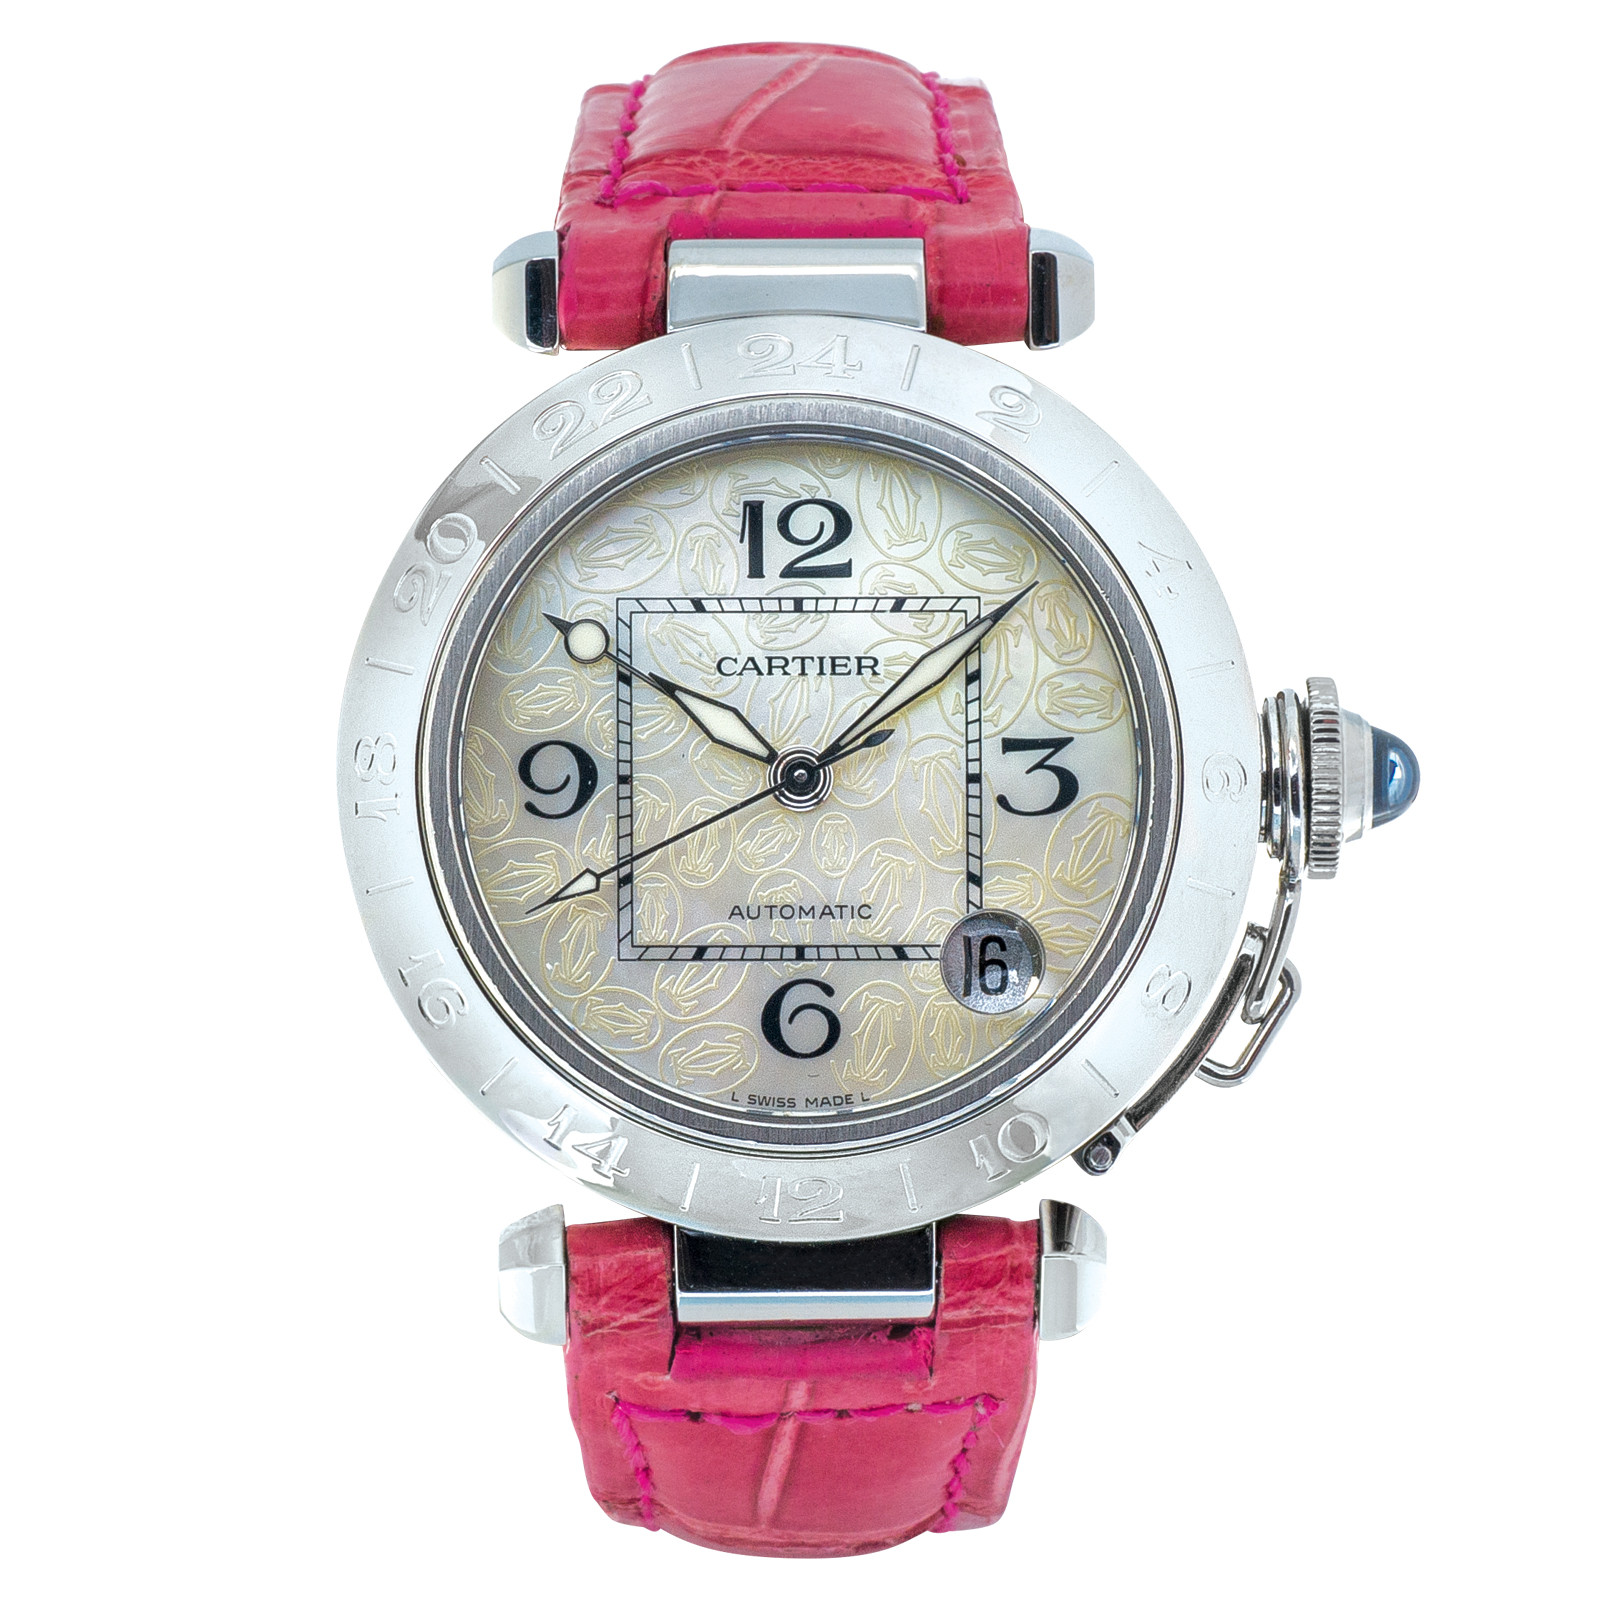 Preowned Cartier Pasha de Cartier Watch